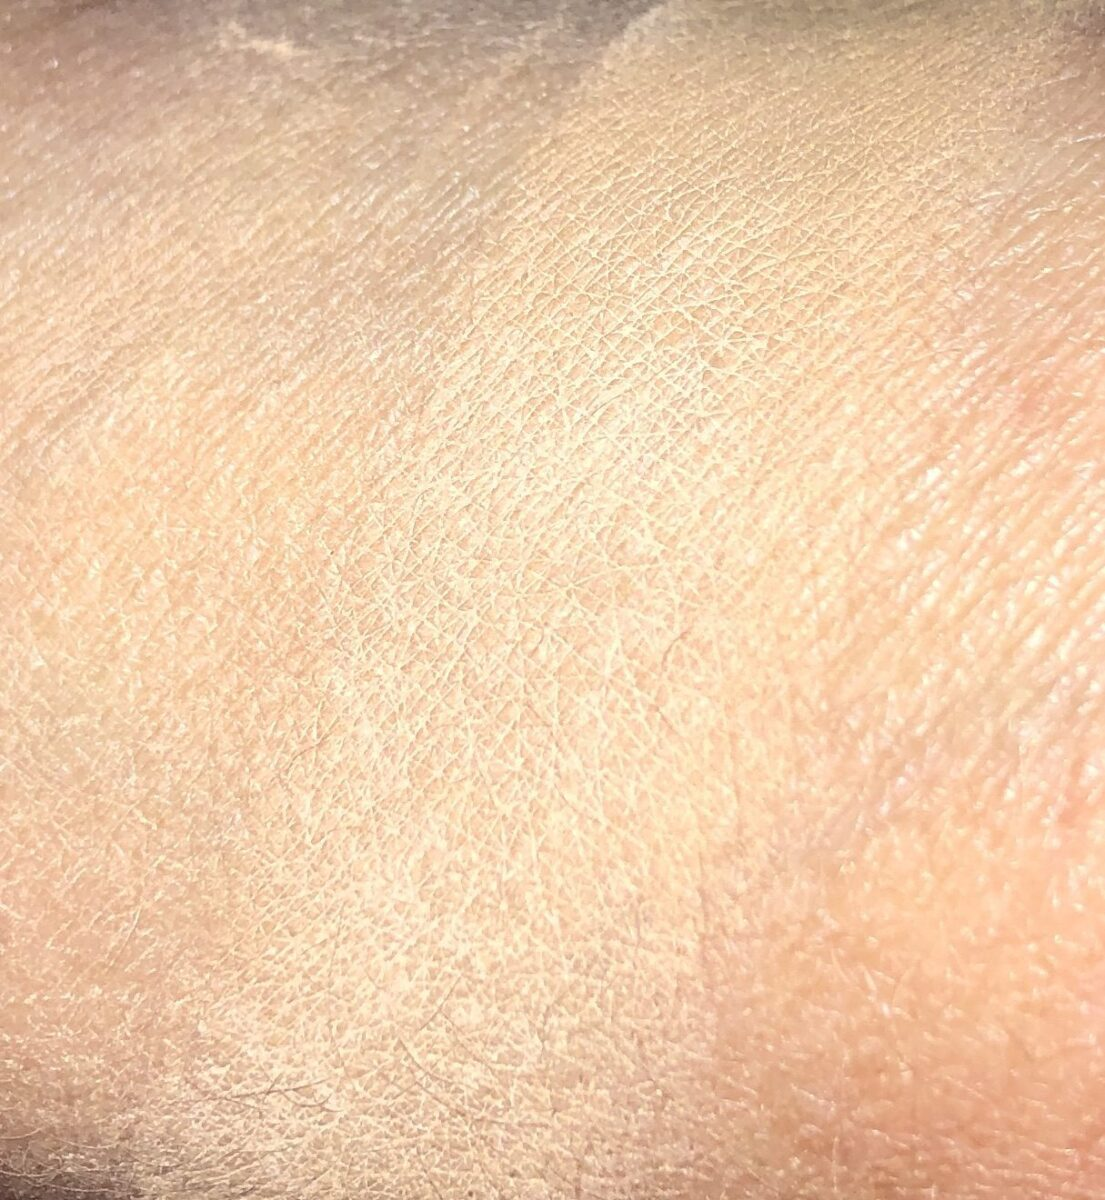 SWATCH M17 WITH MEDIUM SETTING POWDER ON TOP SWATCHES